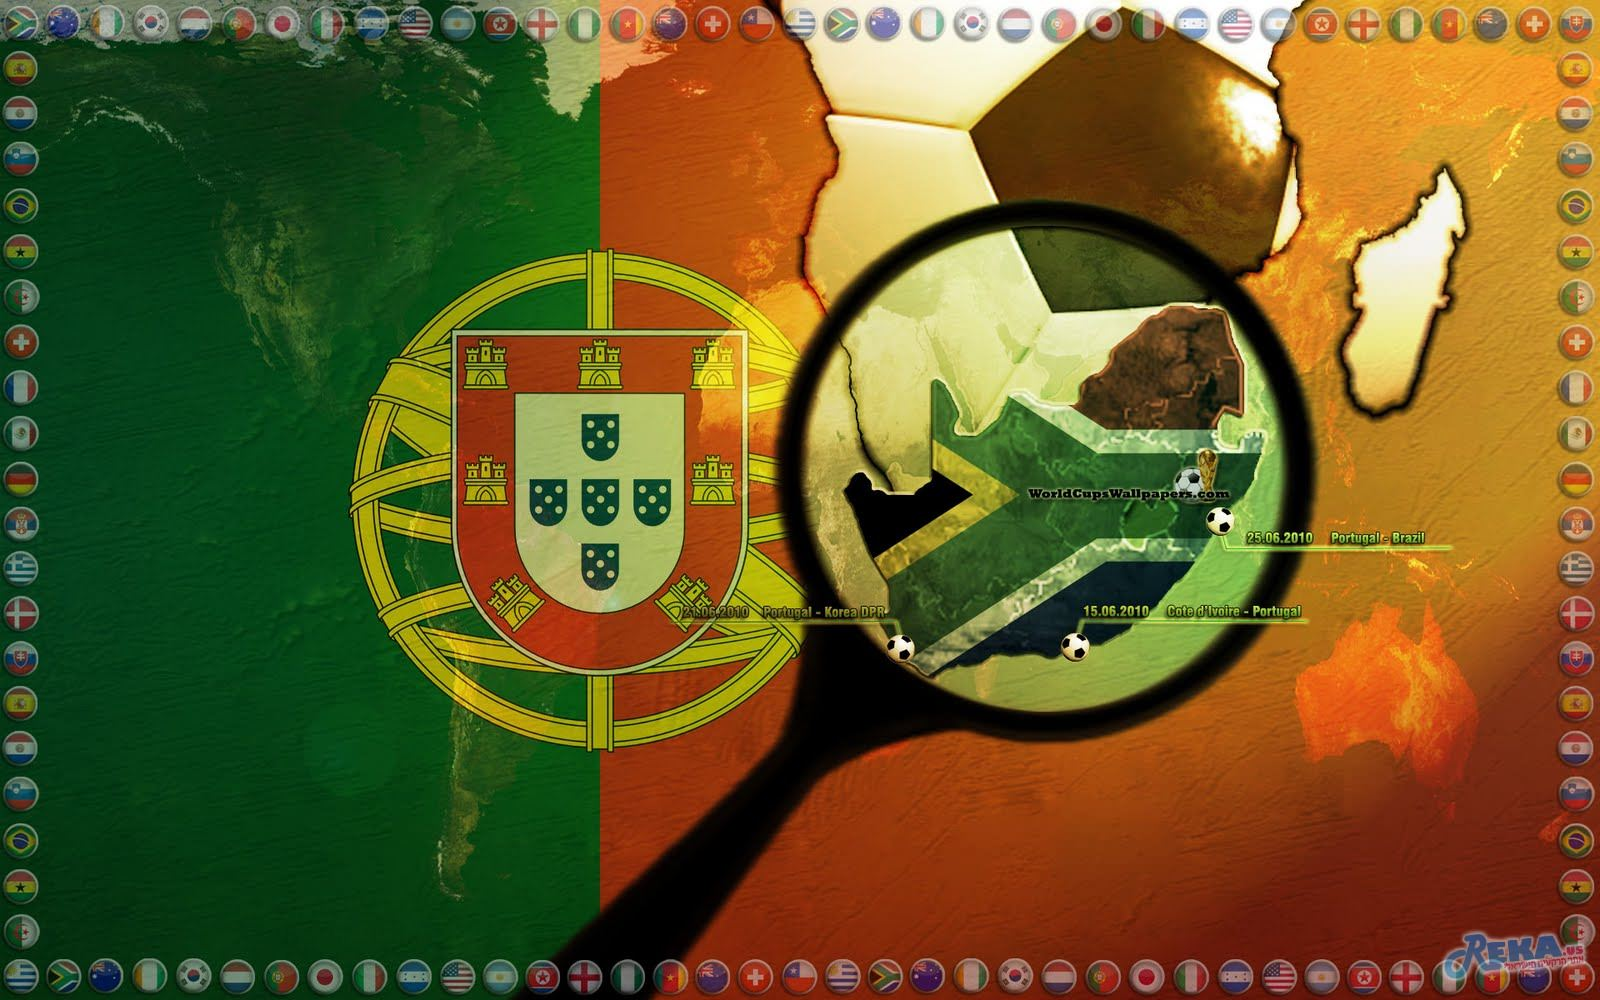 Portugal-World-Cup-2010-Widescreen-Wallpaper